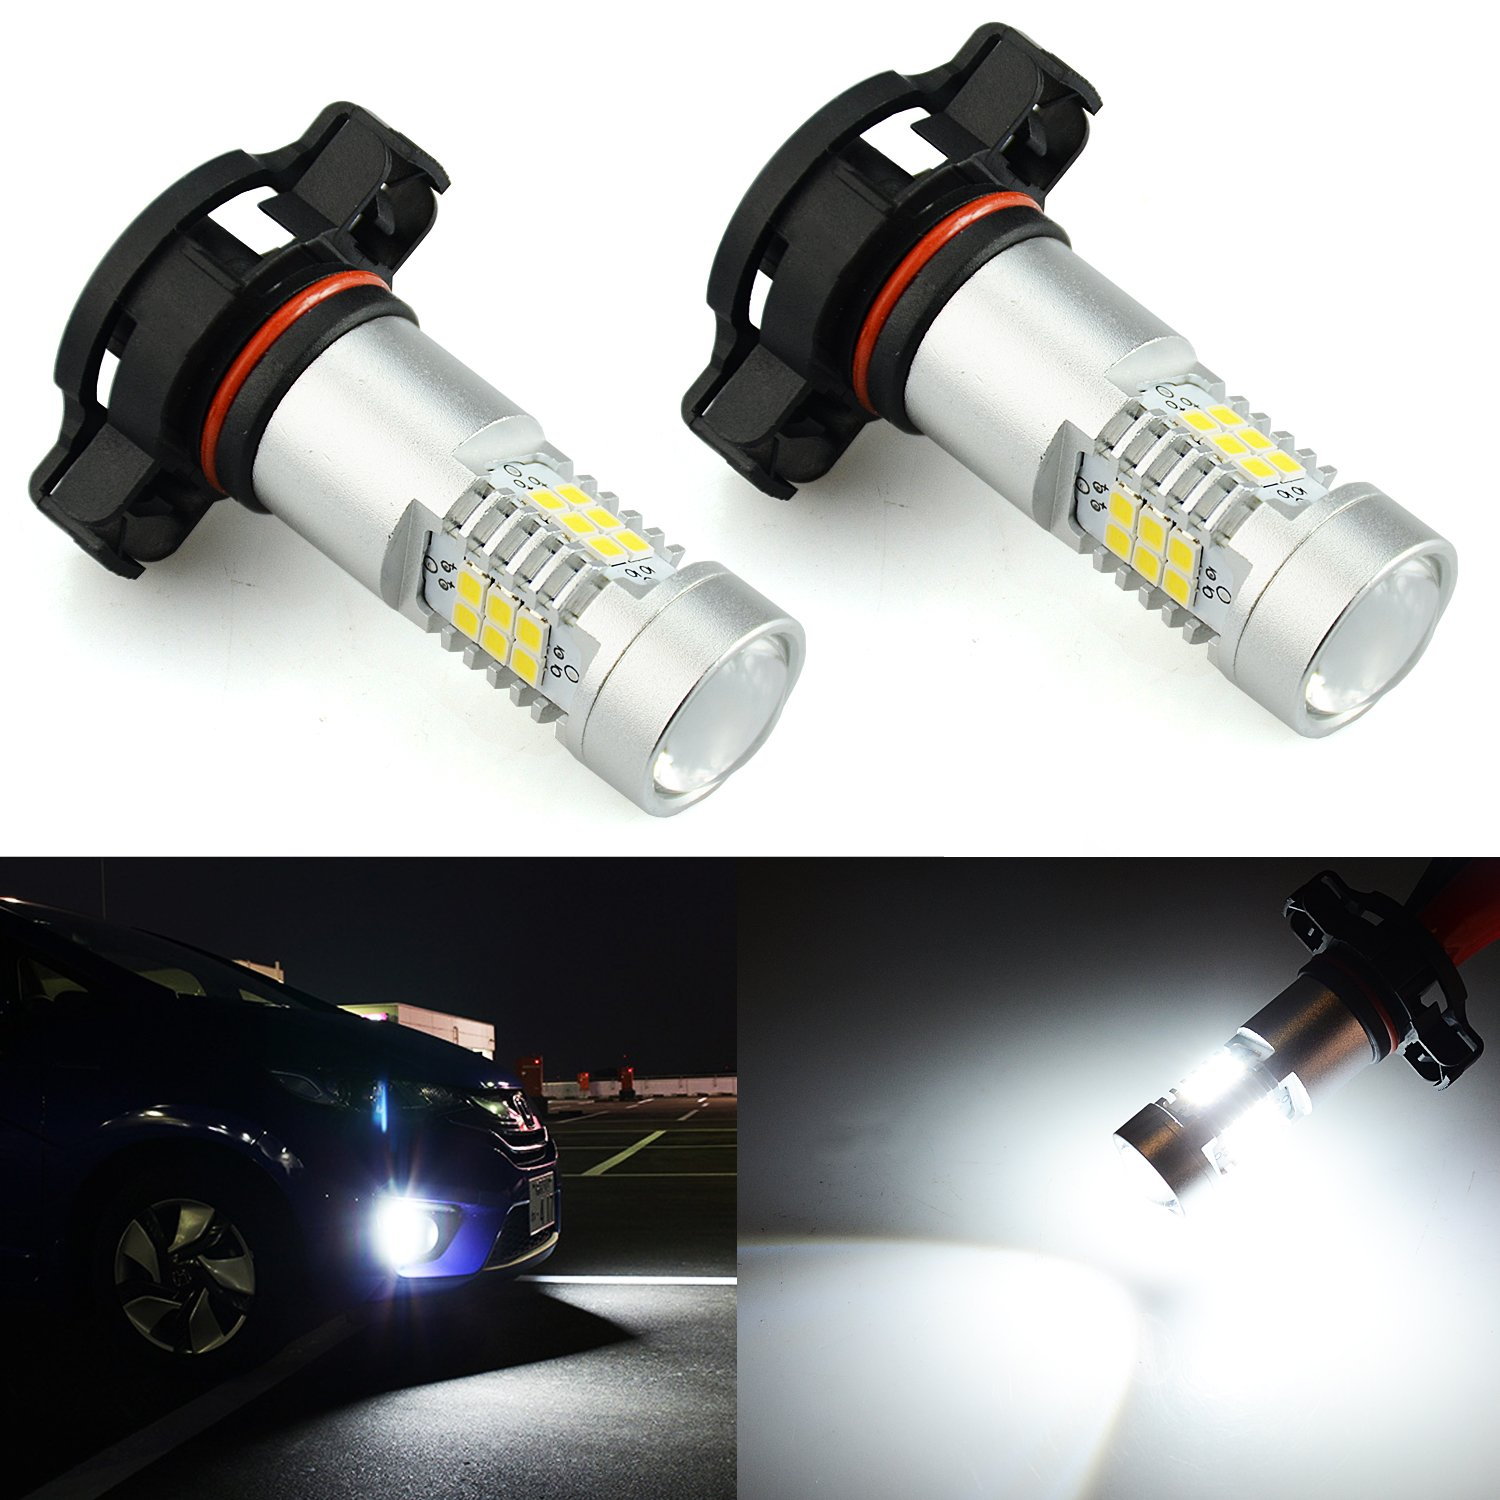 JDM ASTAR 2520 Lumens Extremely Bright PX Chips 2504 pxs24w LED Fog Light Bulbs with Projector for DRL or Fog Lights, Xenon White (2504)